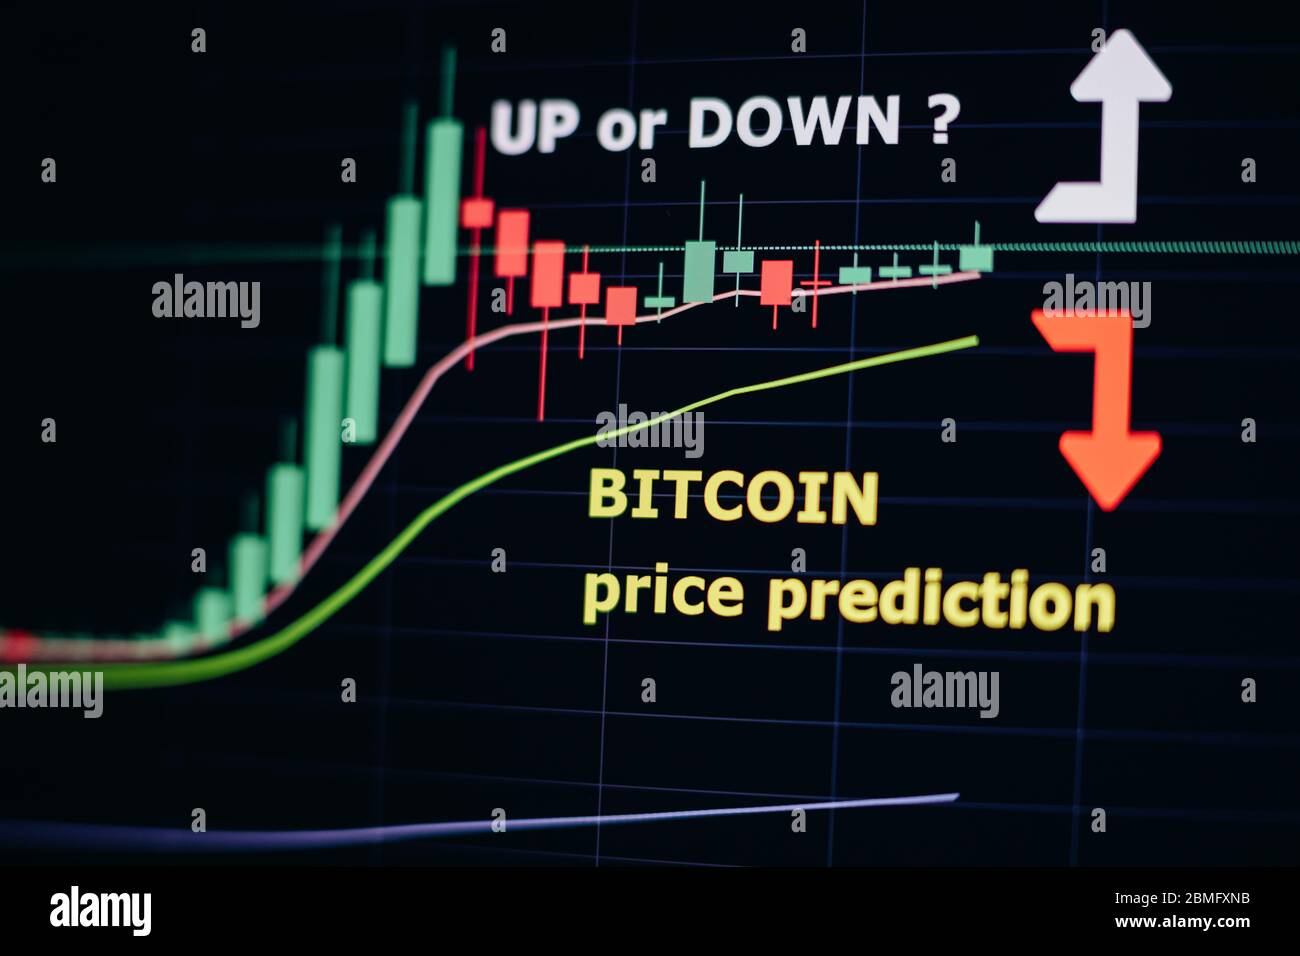 Bitcoin Price Forecast Trend Graph Btc Uptrend Or Downtrend Movement Price Prediction Graph Analysis Cryptocurrency Trading Online Stock Photo Alamy